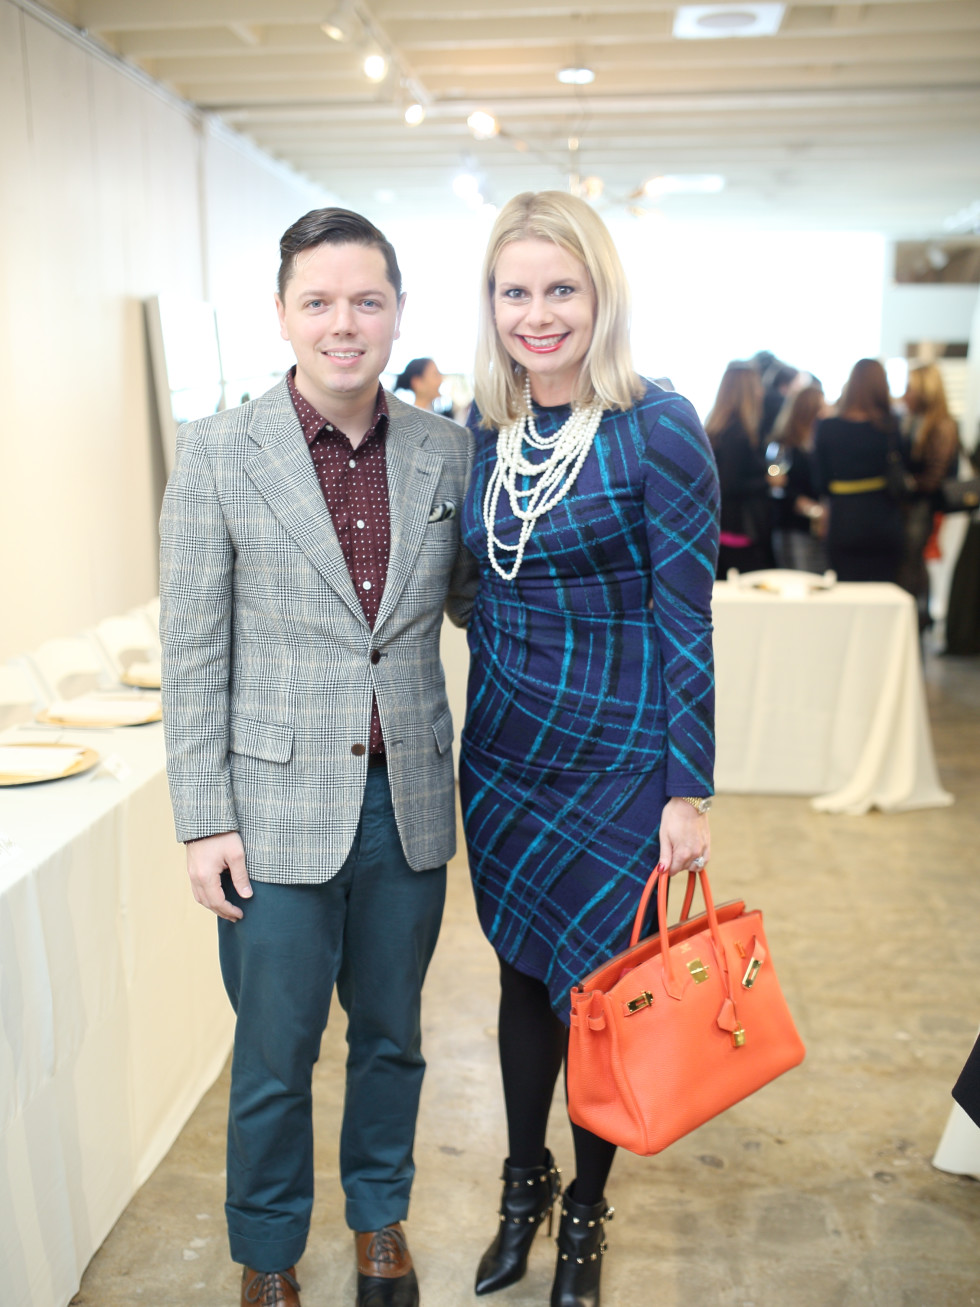 David Peck, Valerie Palmquist Dieterich at Miles David fashion show